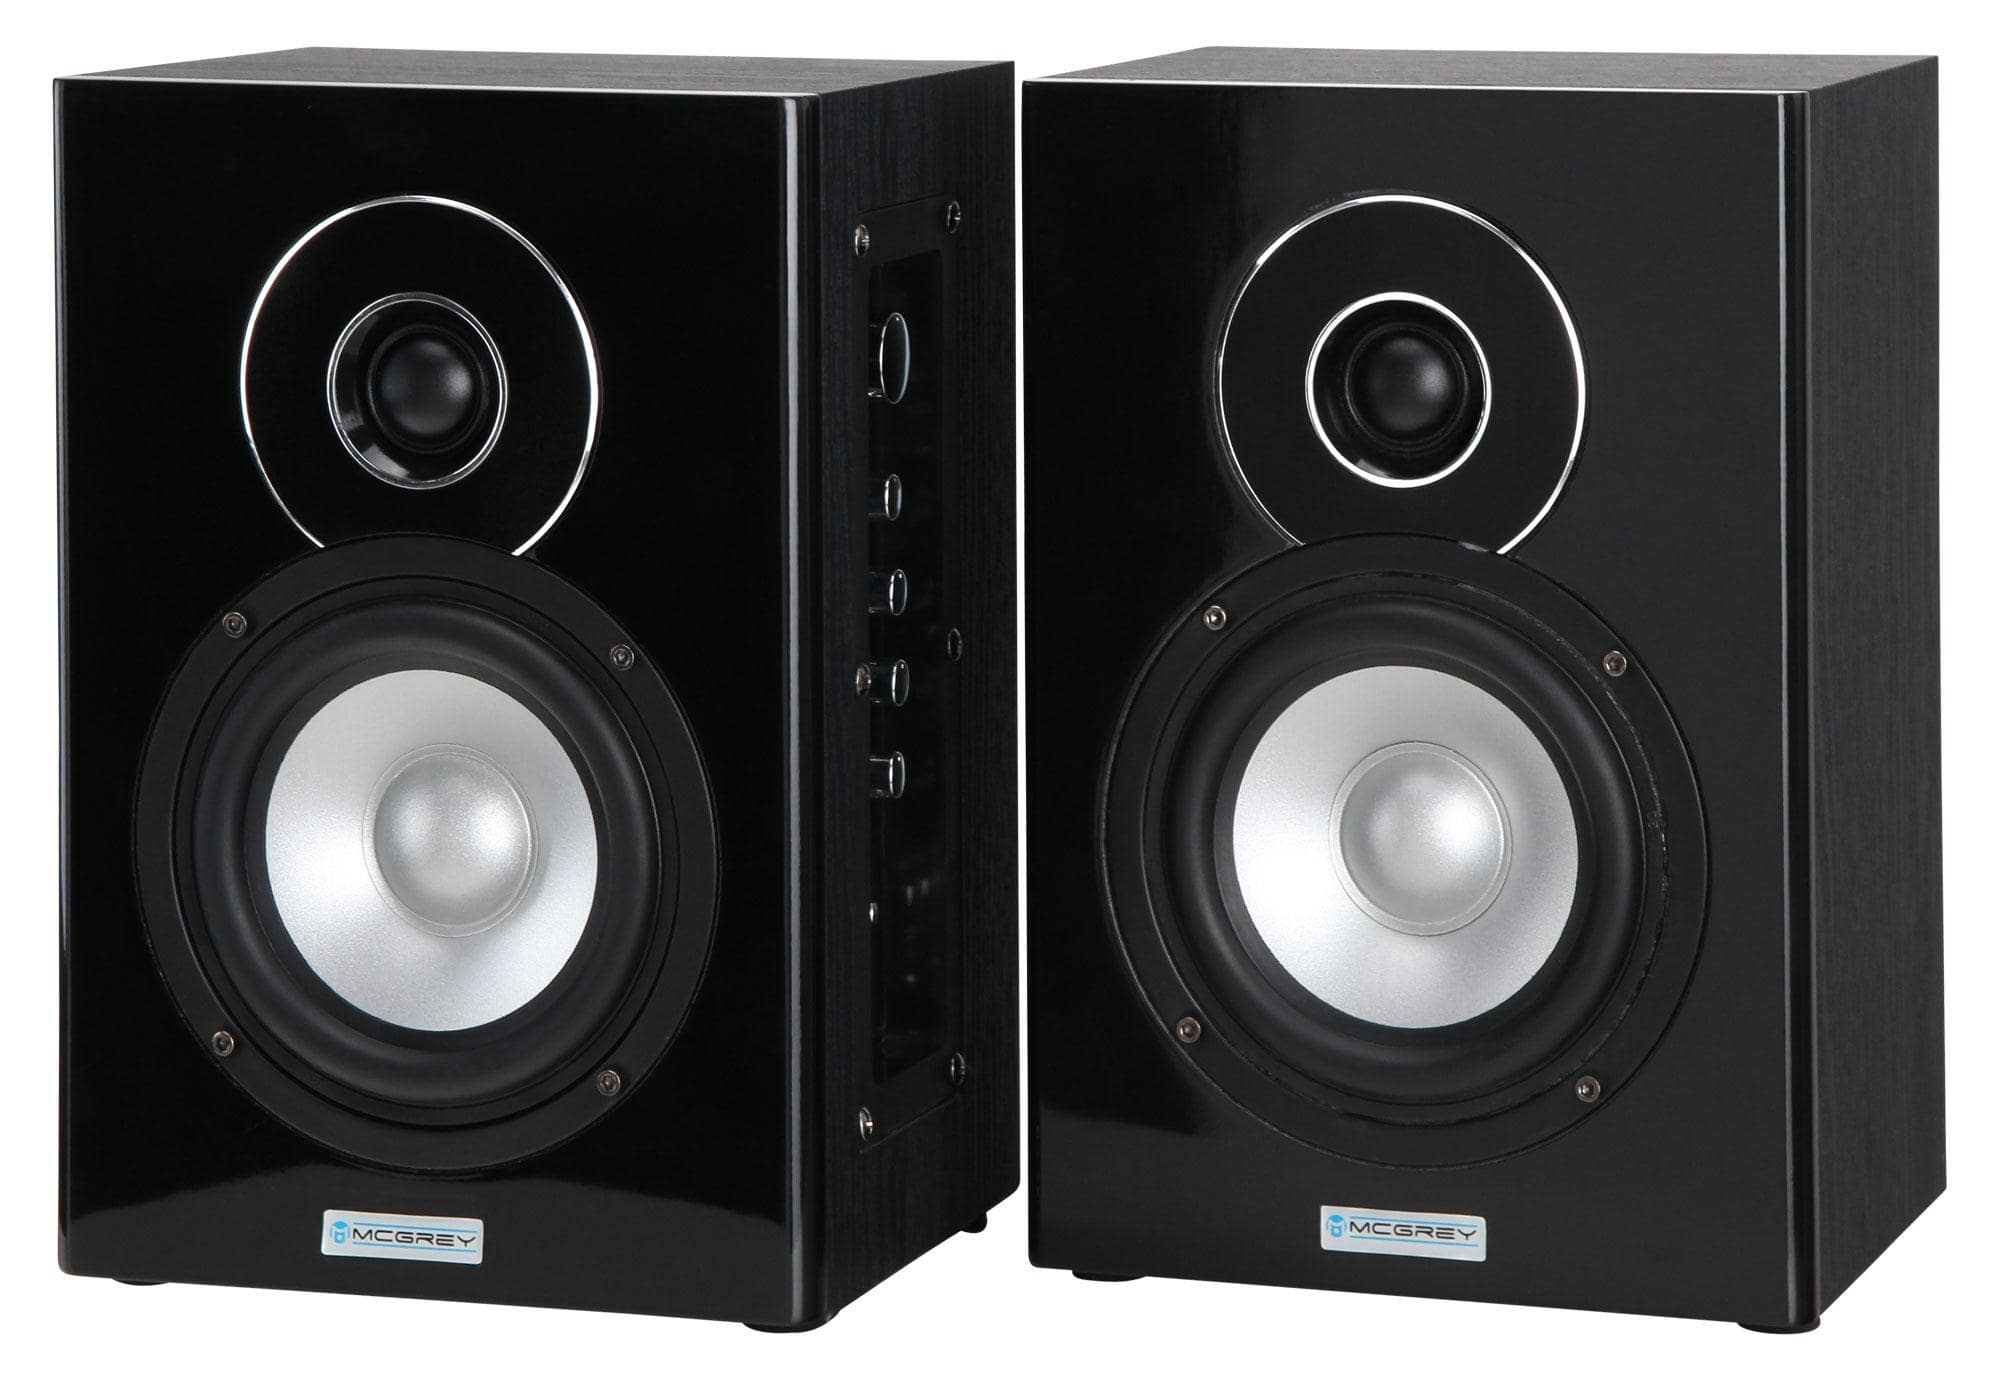 mcgrey bts 235a aktiv studio monitor lautsprecher paar mit bluetooth 80 watt retoure zustand. Black Bedroom Furniture Sets. Home Design Ideas